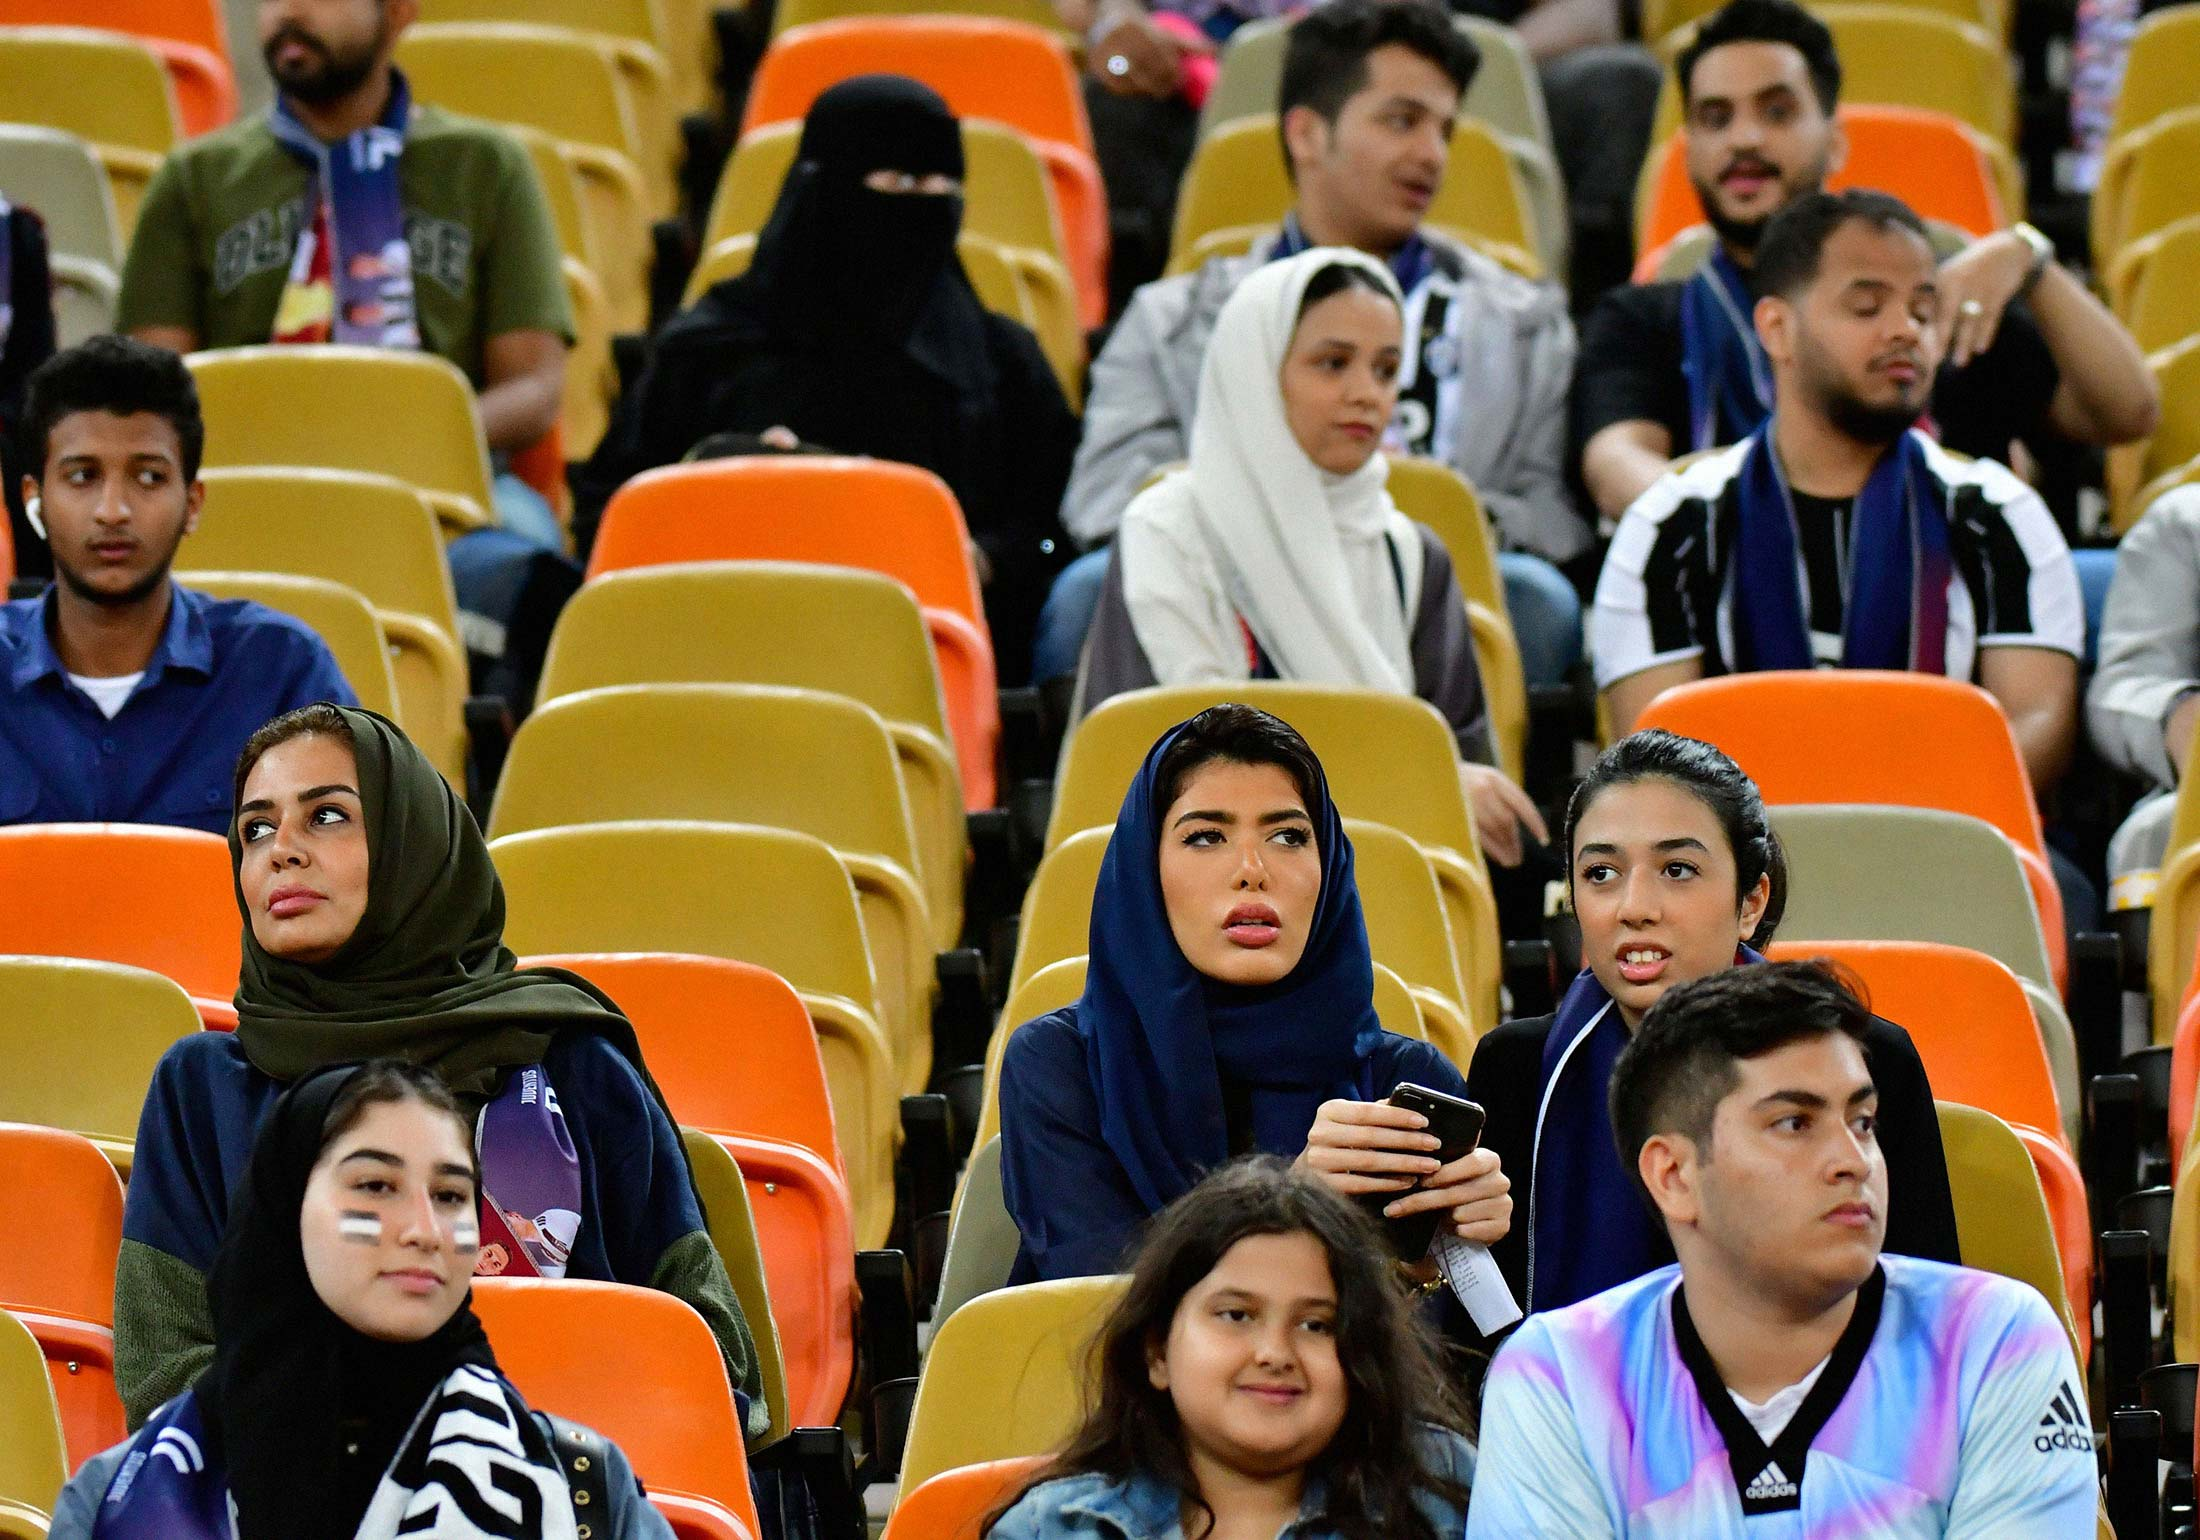 Fans in the stands ahead of the Supercoppa Italiana final between Juventus and AC Milan at the King Abdullah Sports City Stadium in Jeddah on Jan. 16.